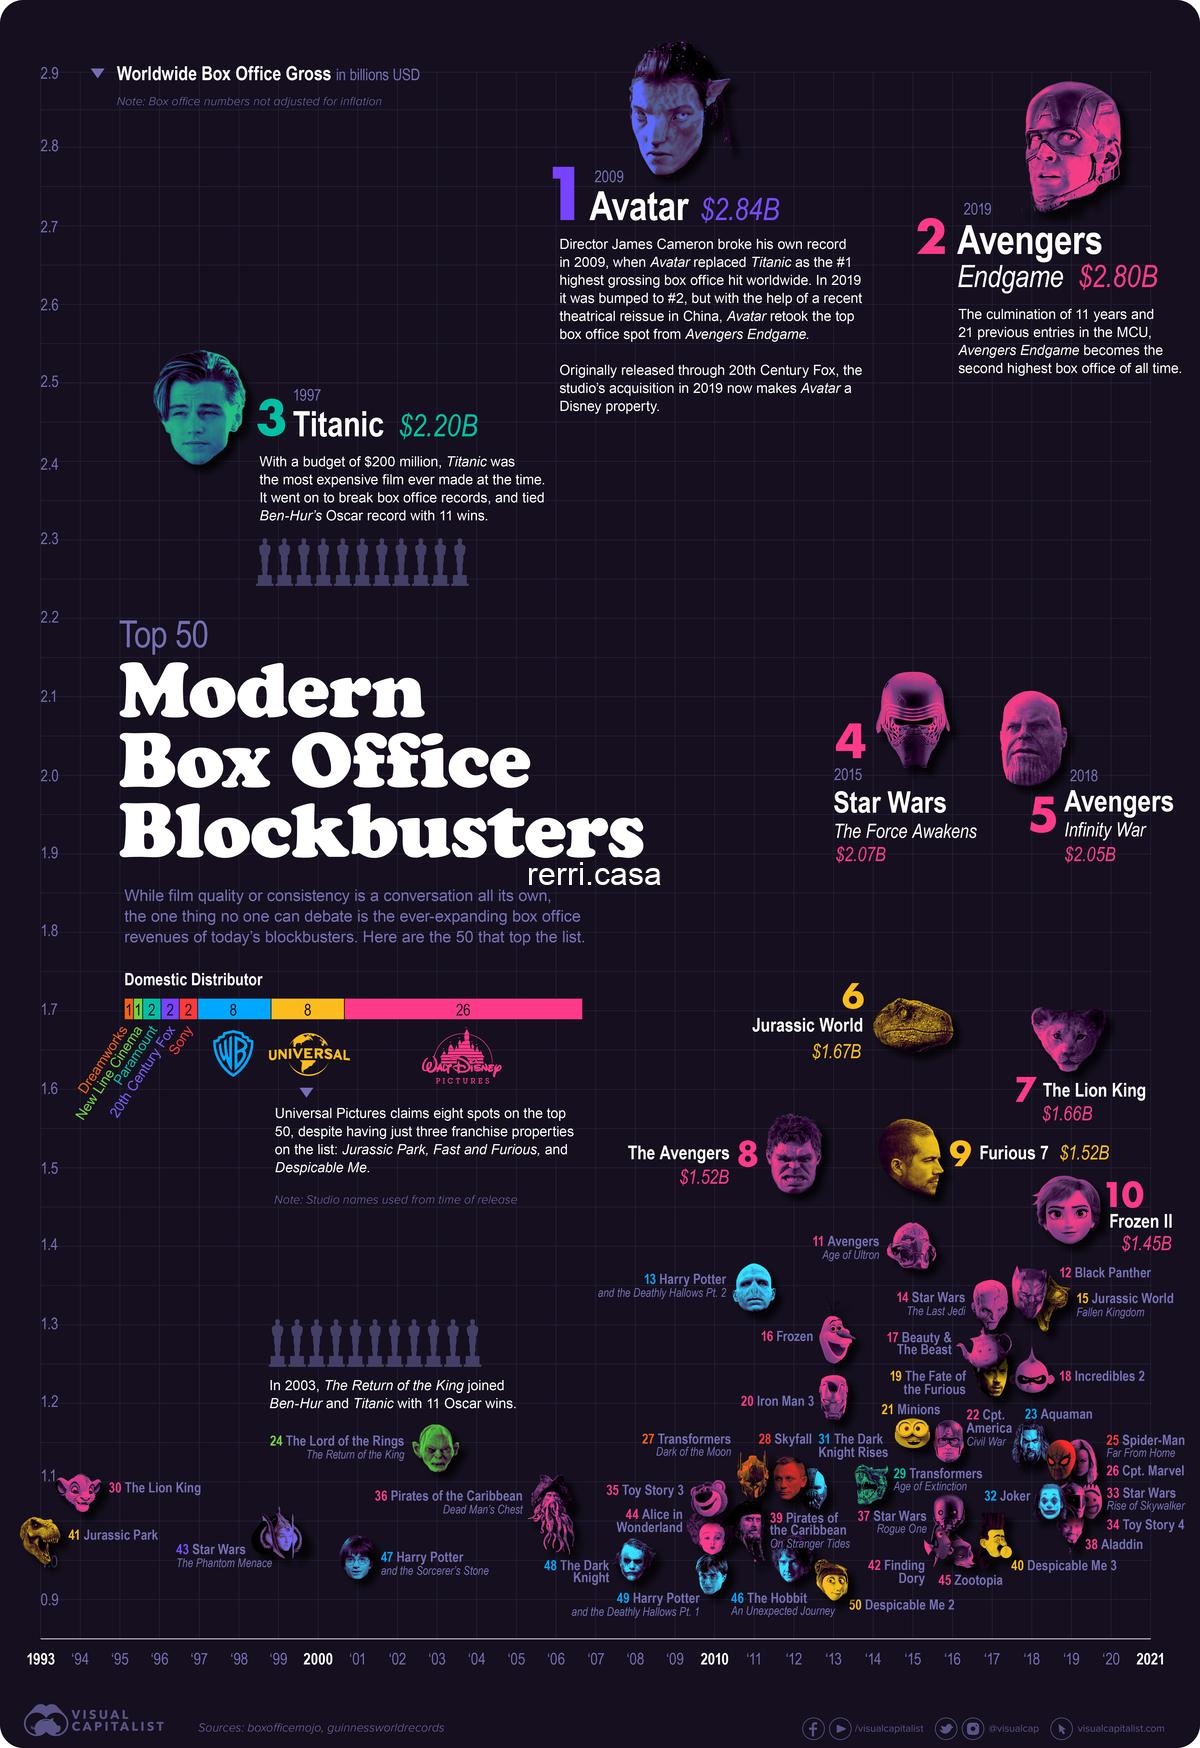 Box Office Blockbusters: The Top Grossing Movies in the Last 30 Years